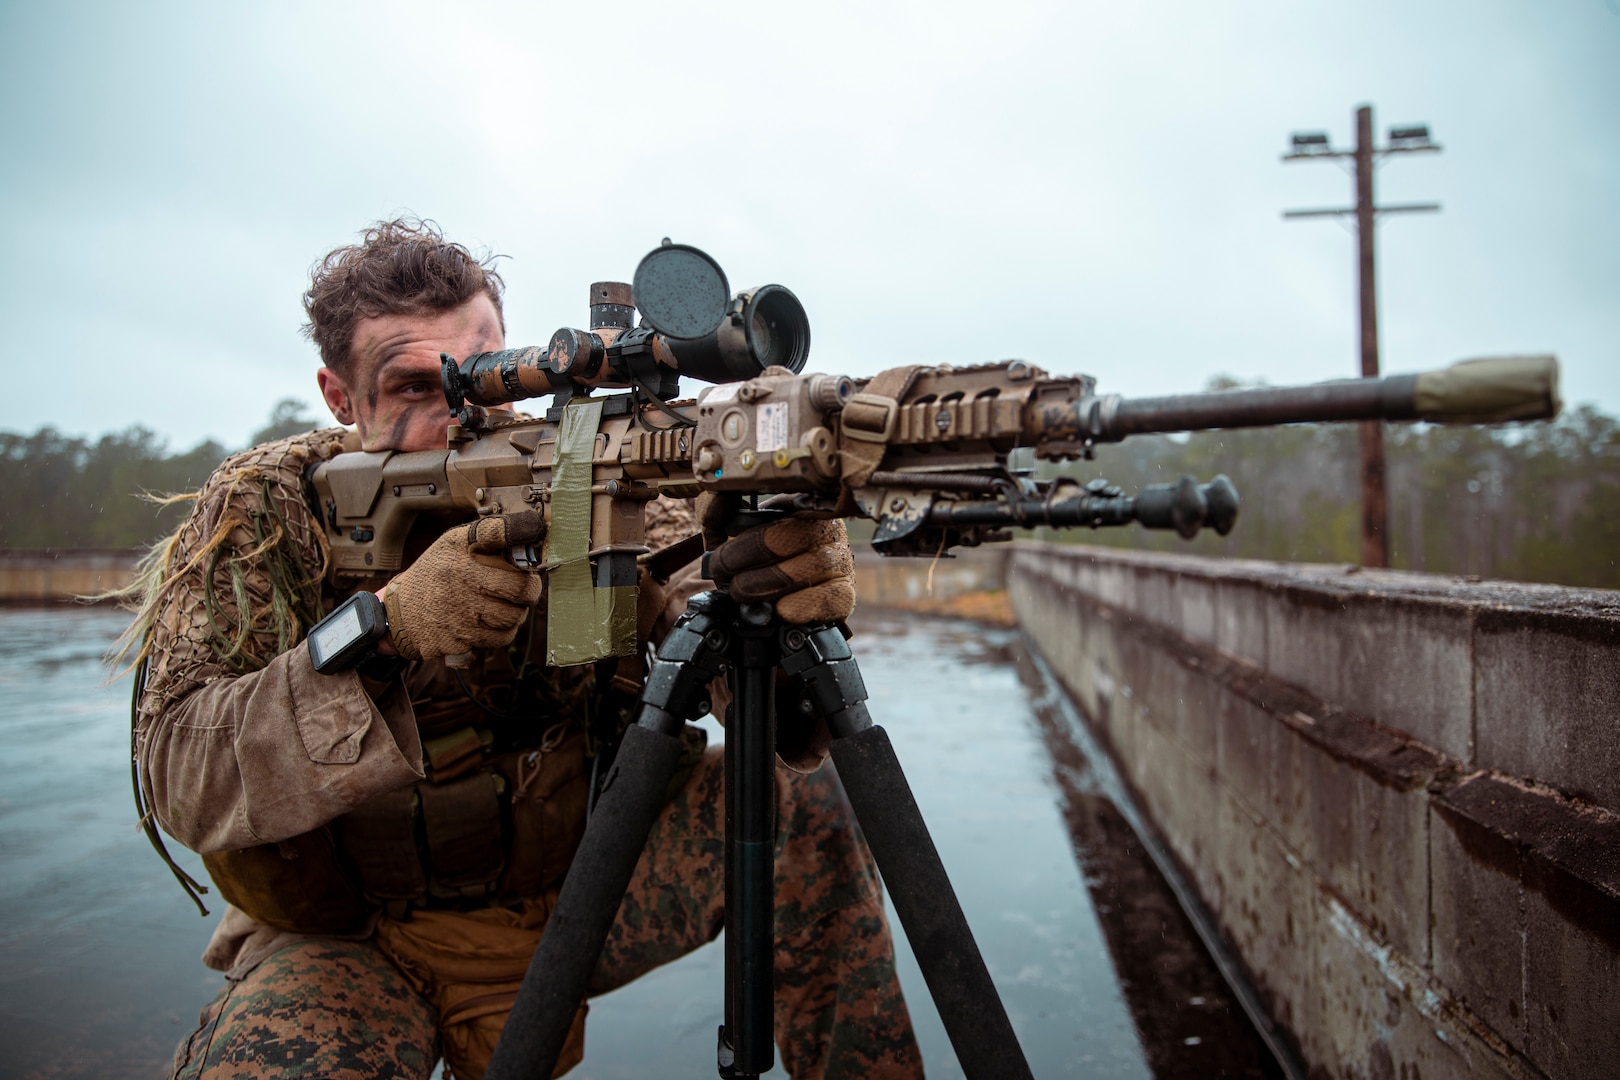 A U.S. Marine posts security during Exercise Caribbean Urban Warrior on Camp Lejeune, N.C., March 22.